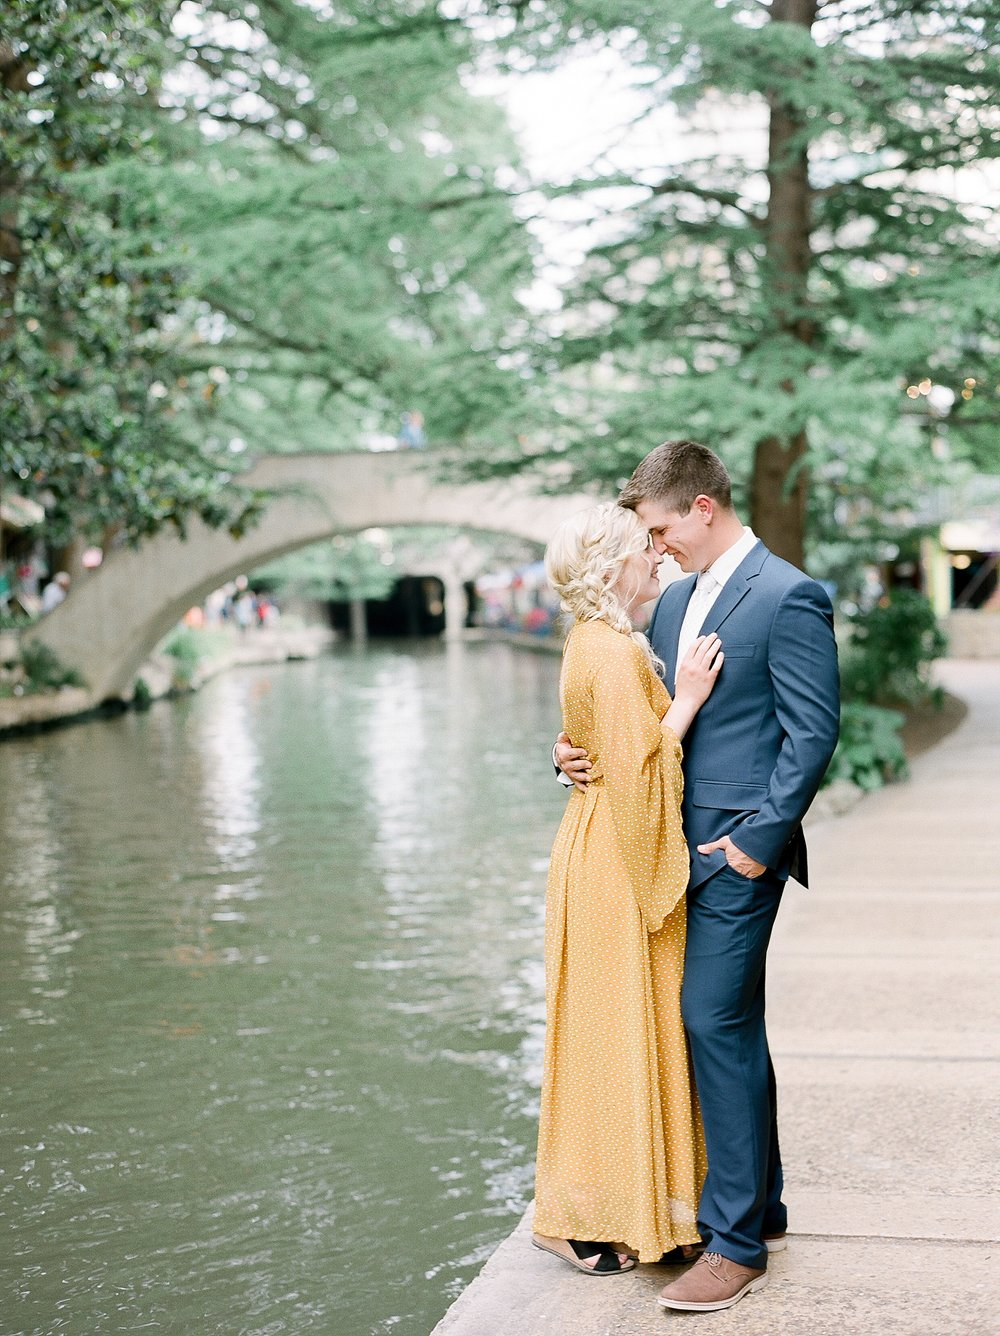 Hybrid Co Anniversary Shoot at River Walk, San Antonio, TX by Julie Paisley Photography_0003.jpg